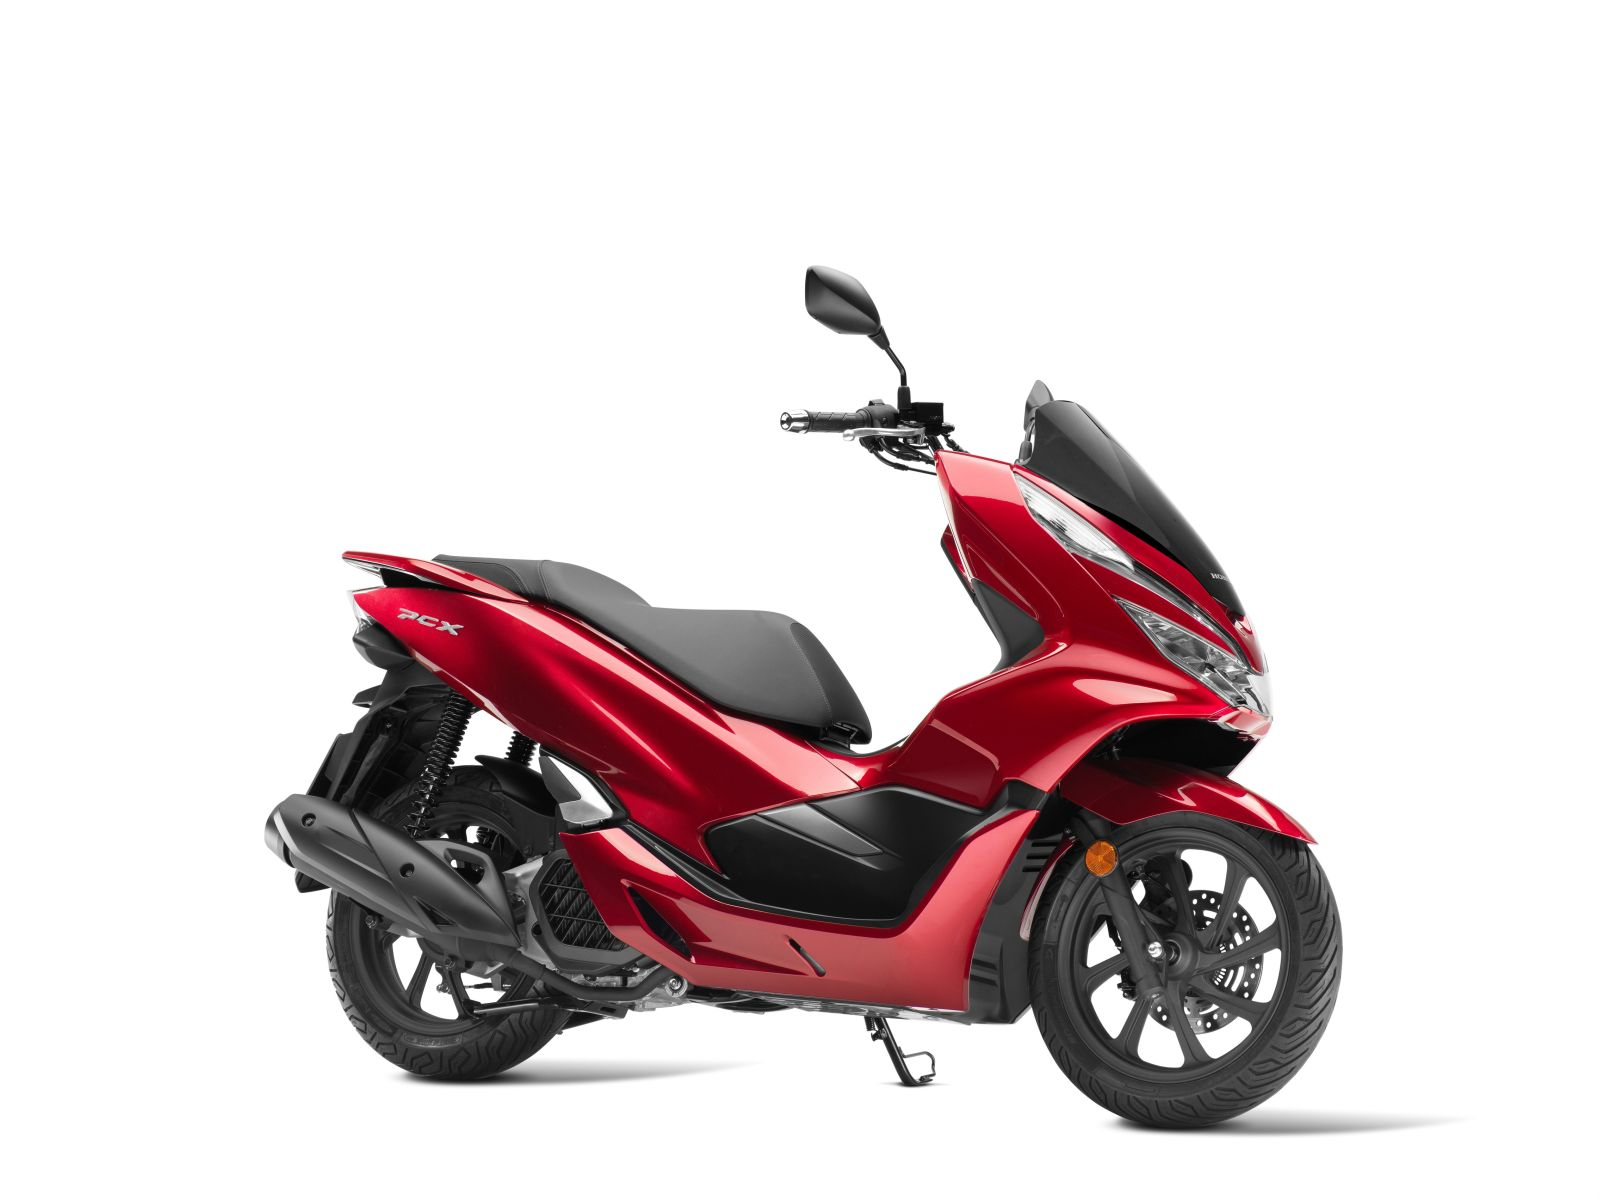 2018 honda pcx125 revealed all details tech specs and. Black Bedroom Furniture Sets. Home Design Ideas